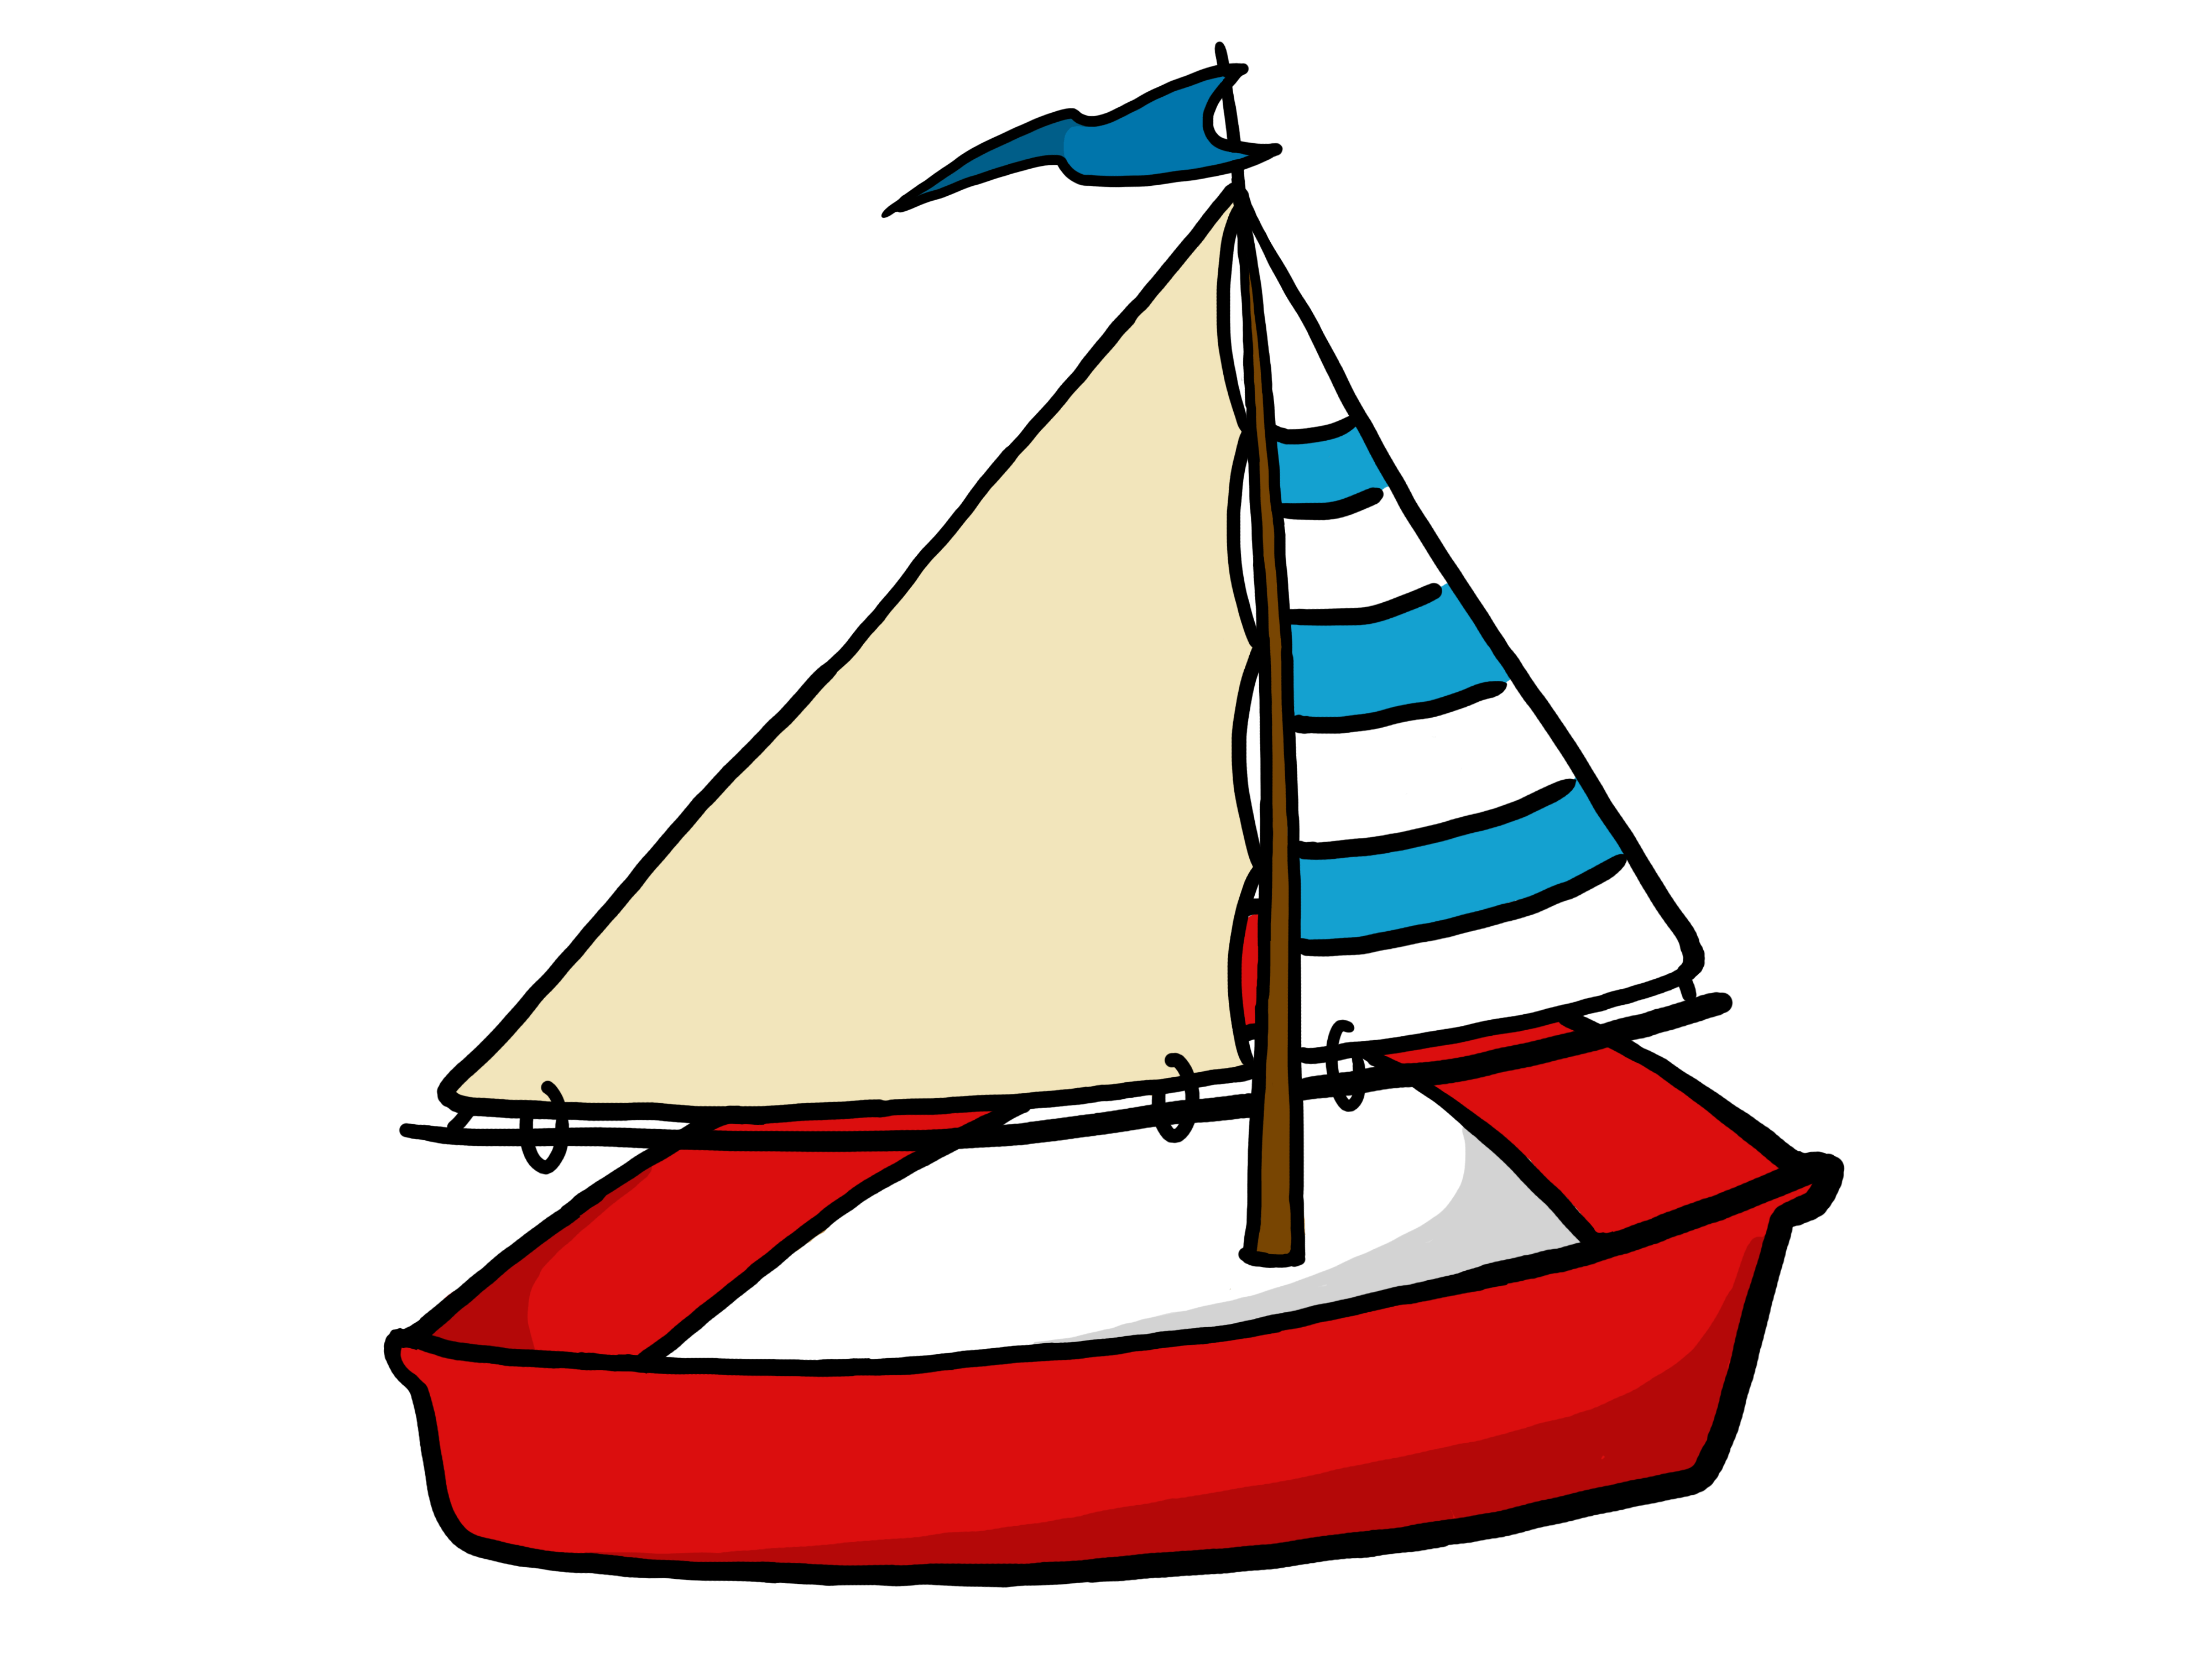 Clipart waves nautical. Sailing adventure cliparts zone